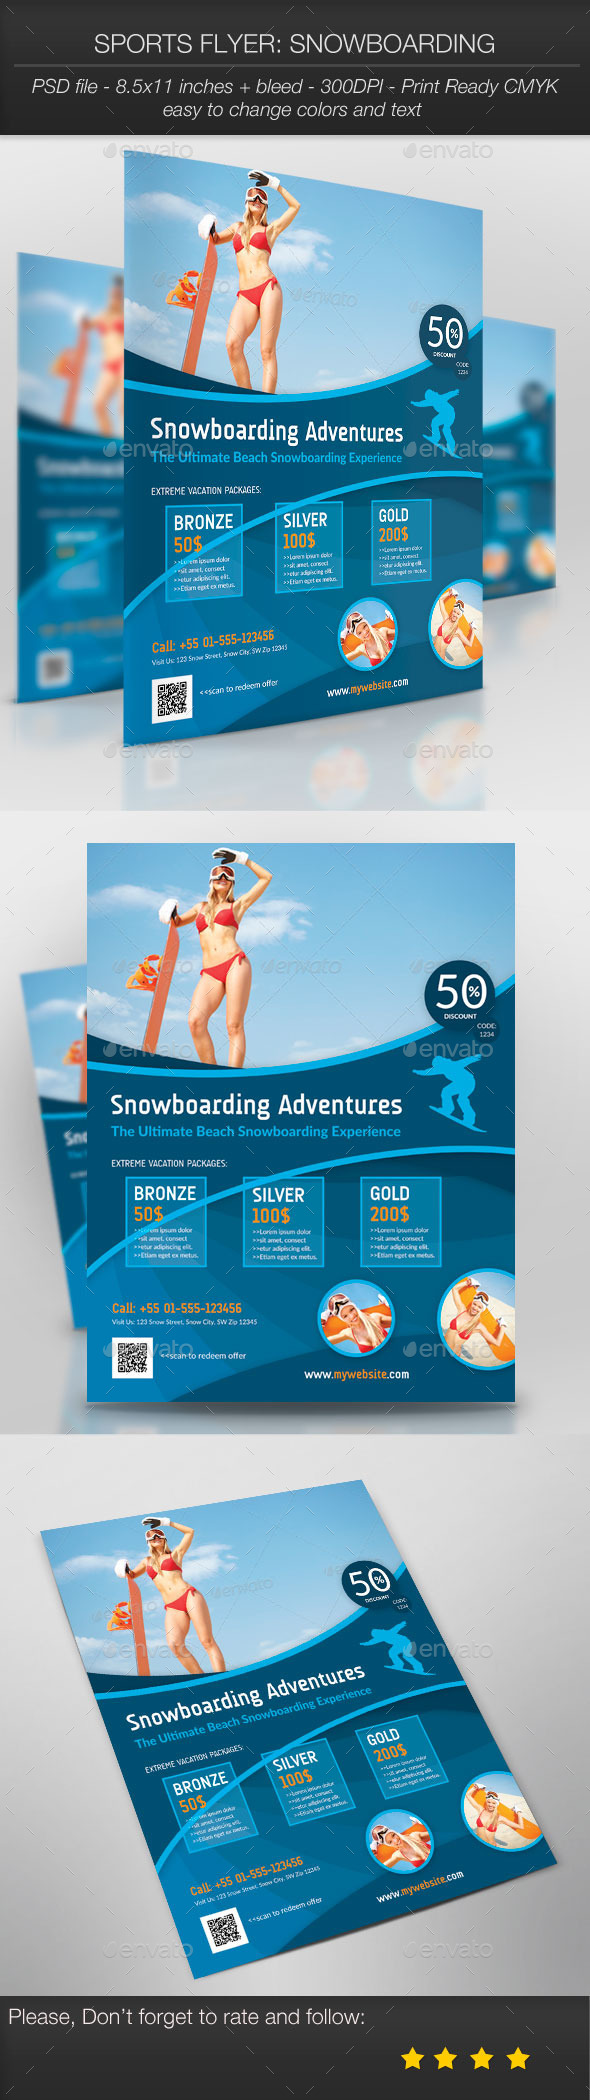 Sports Flyer: Snowboarding - Sports Events